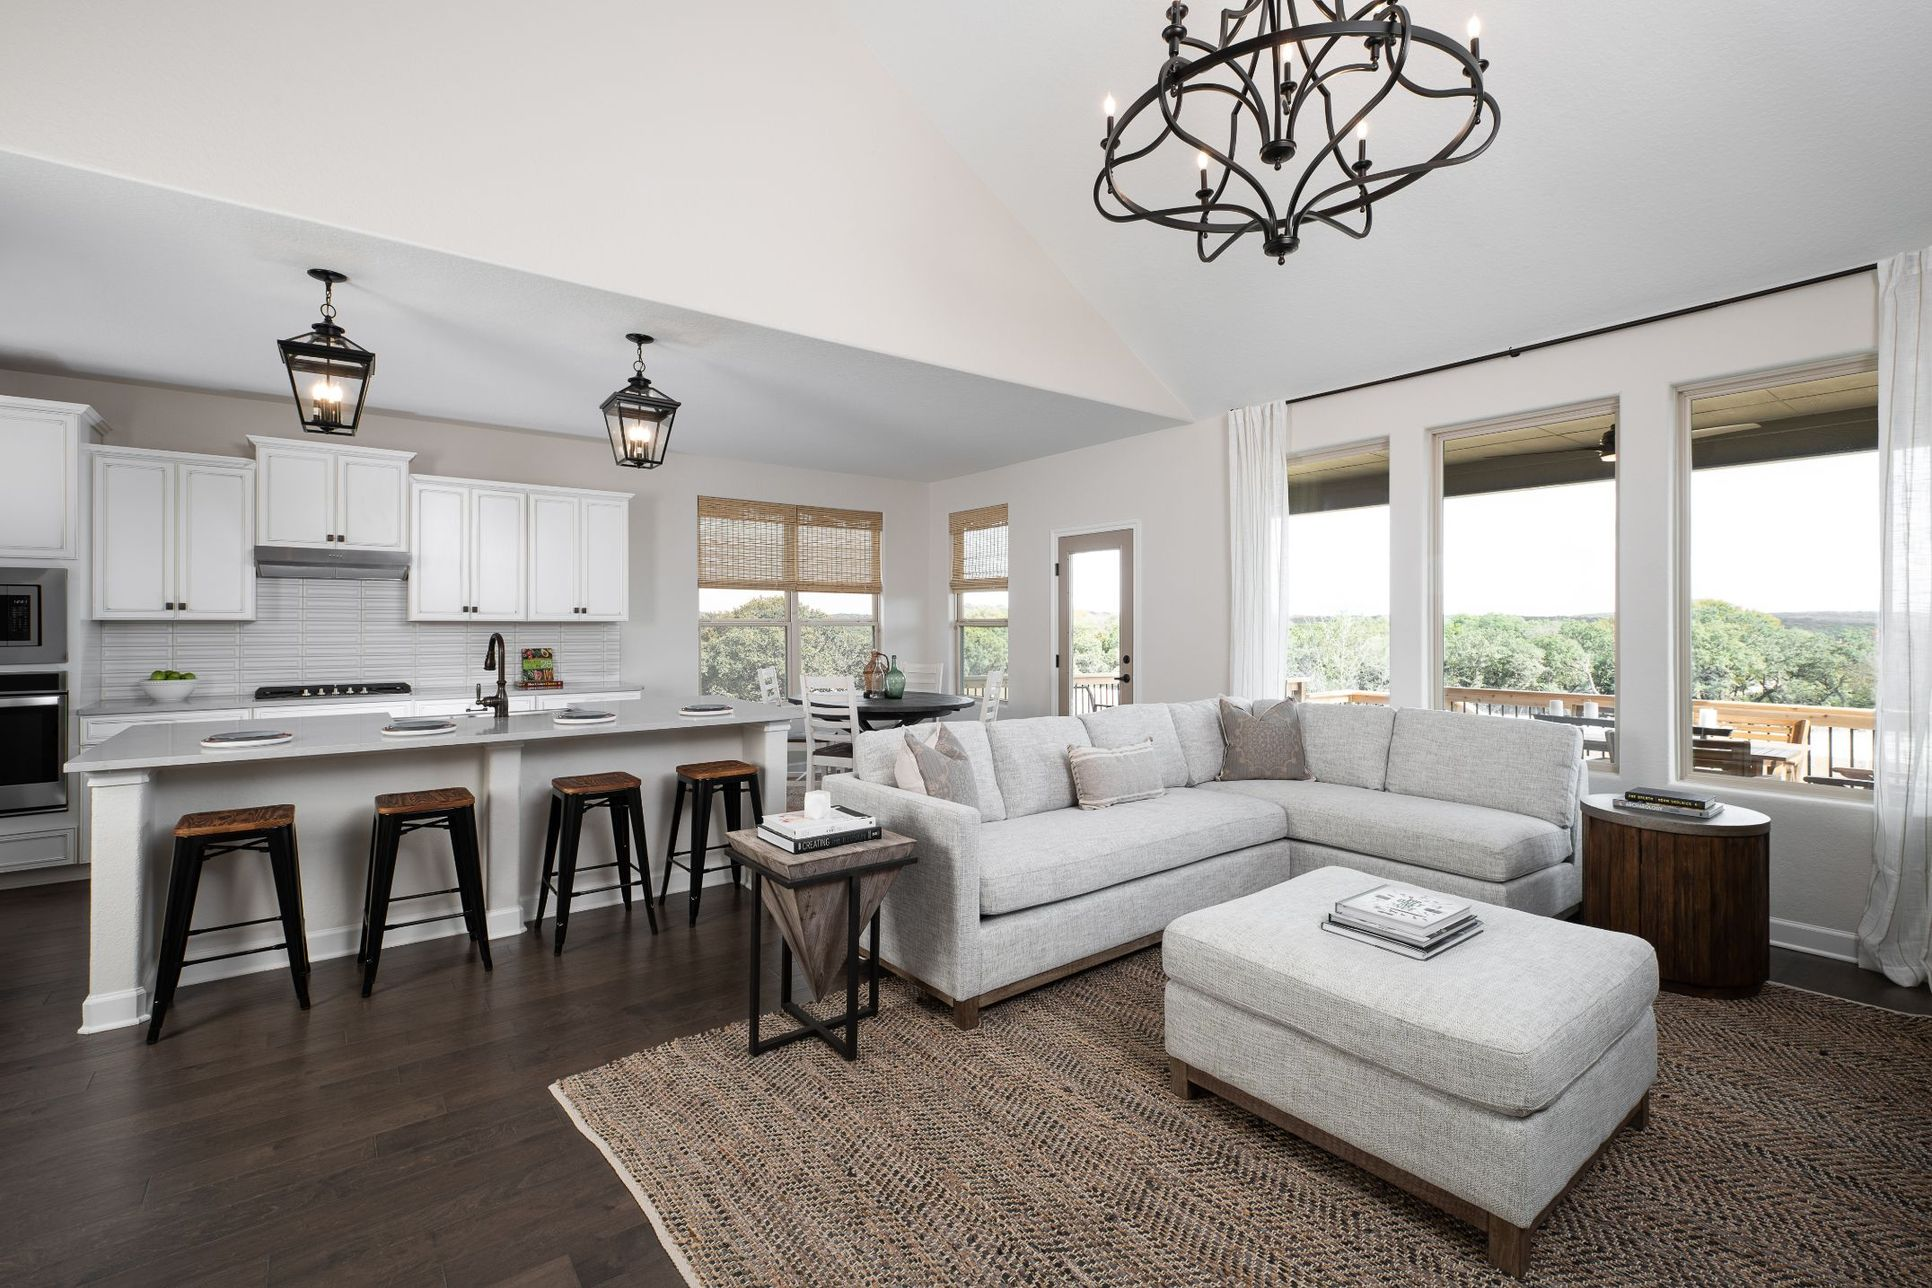 Interior:The Meadows at Imperial Oaks 50ft - Odessa Interior Image 1